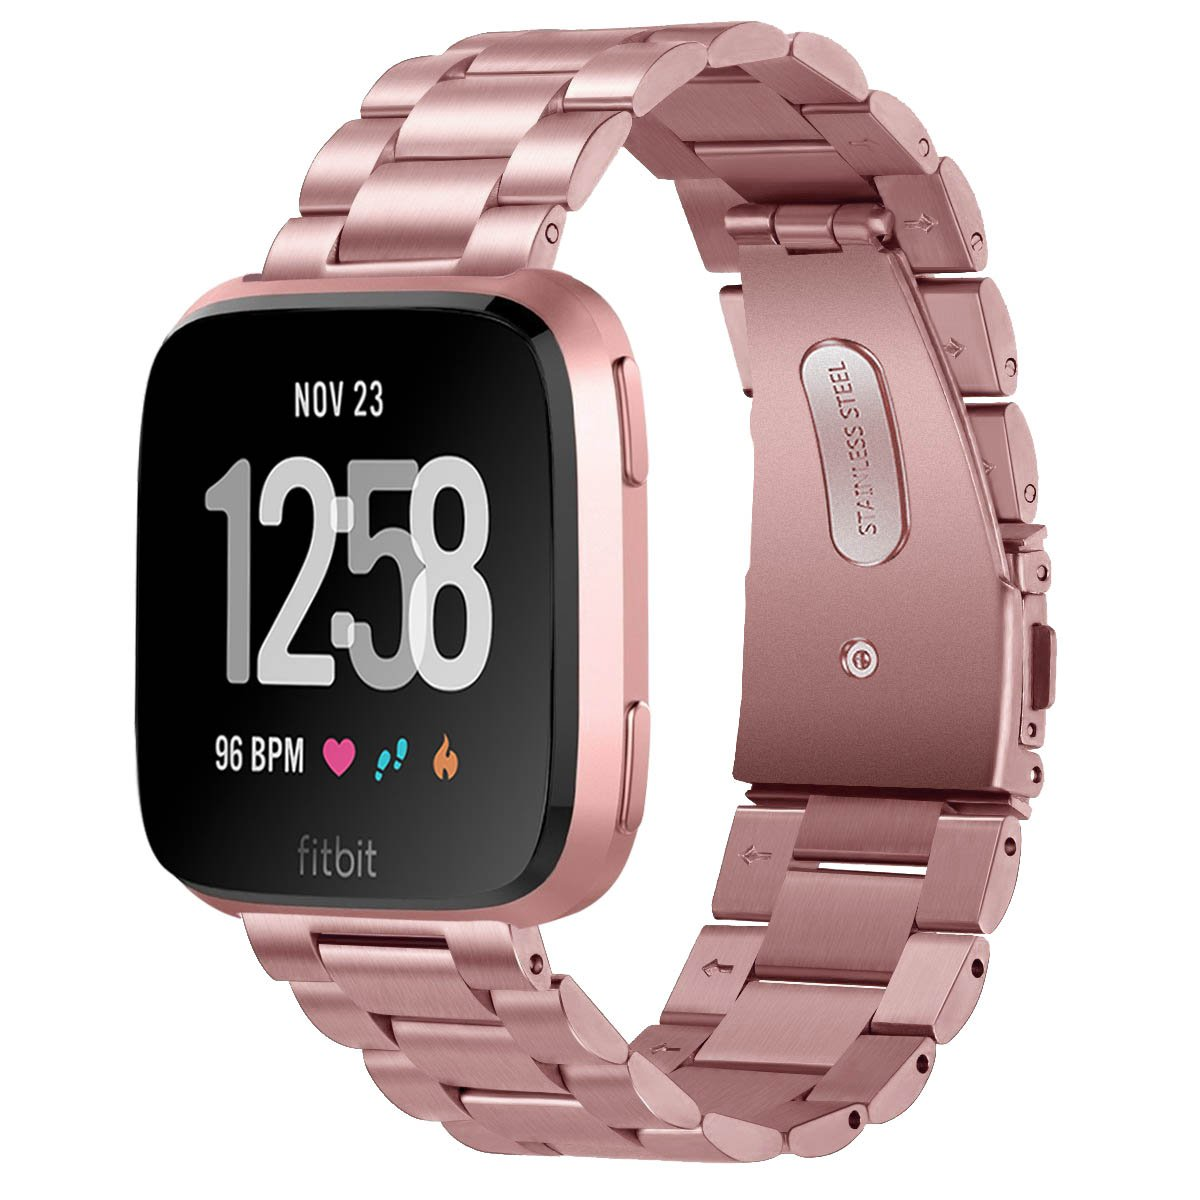 fitbit versa special edition rose gold